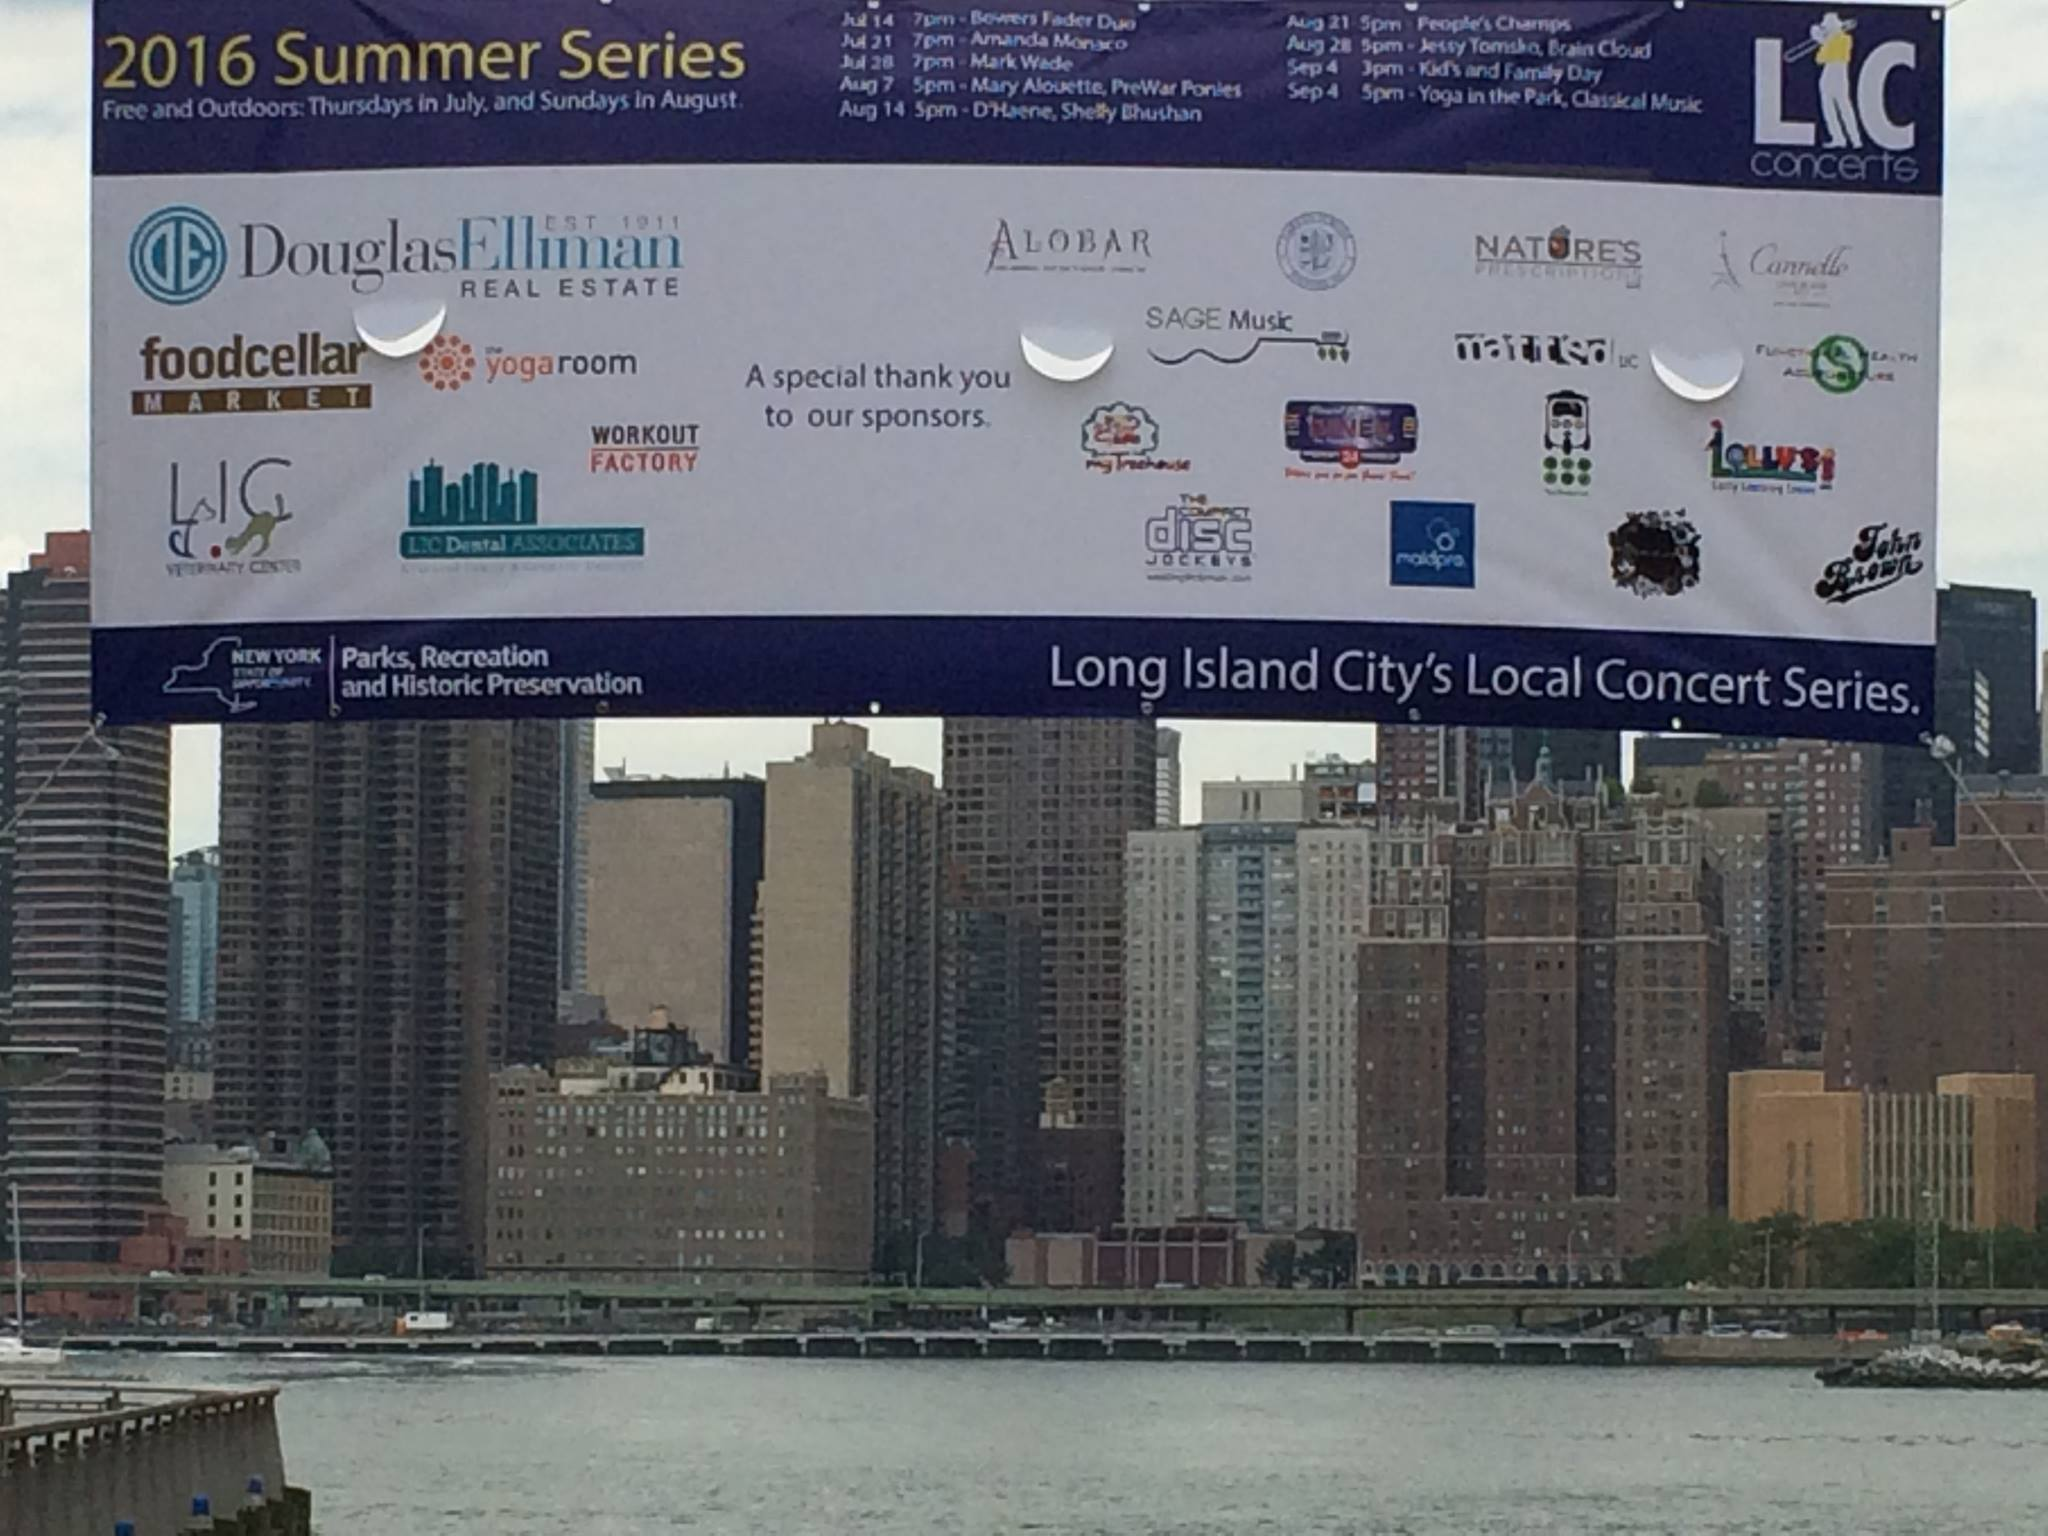 LIC Concerts 2016 banner.jpg